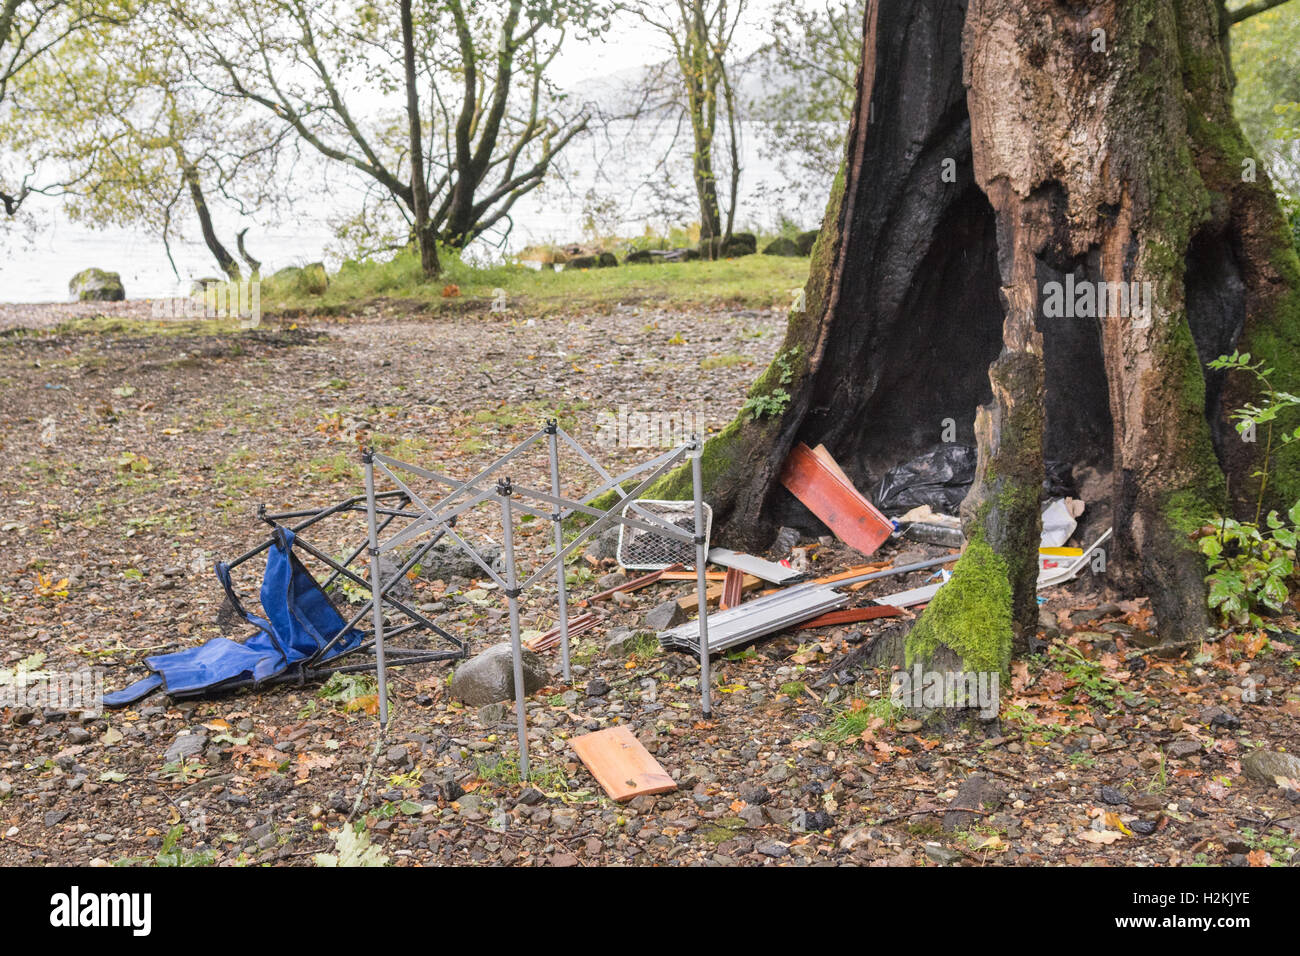 wild camping problems - Antisocial behaviour and environmental damage - on the Western shore of Loch Lomond Scotland - Stock Image